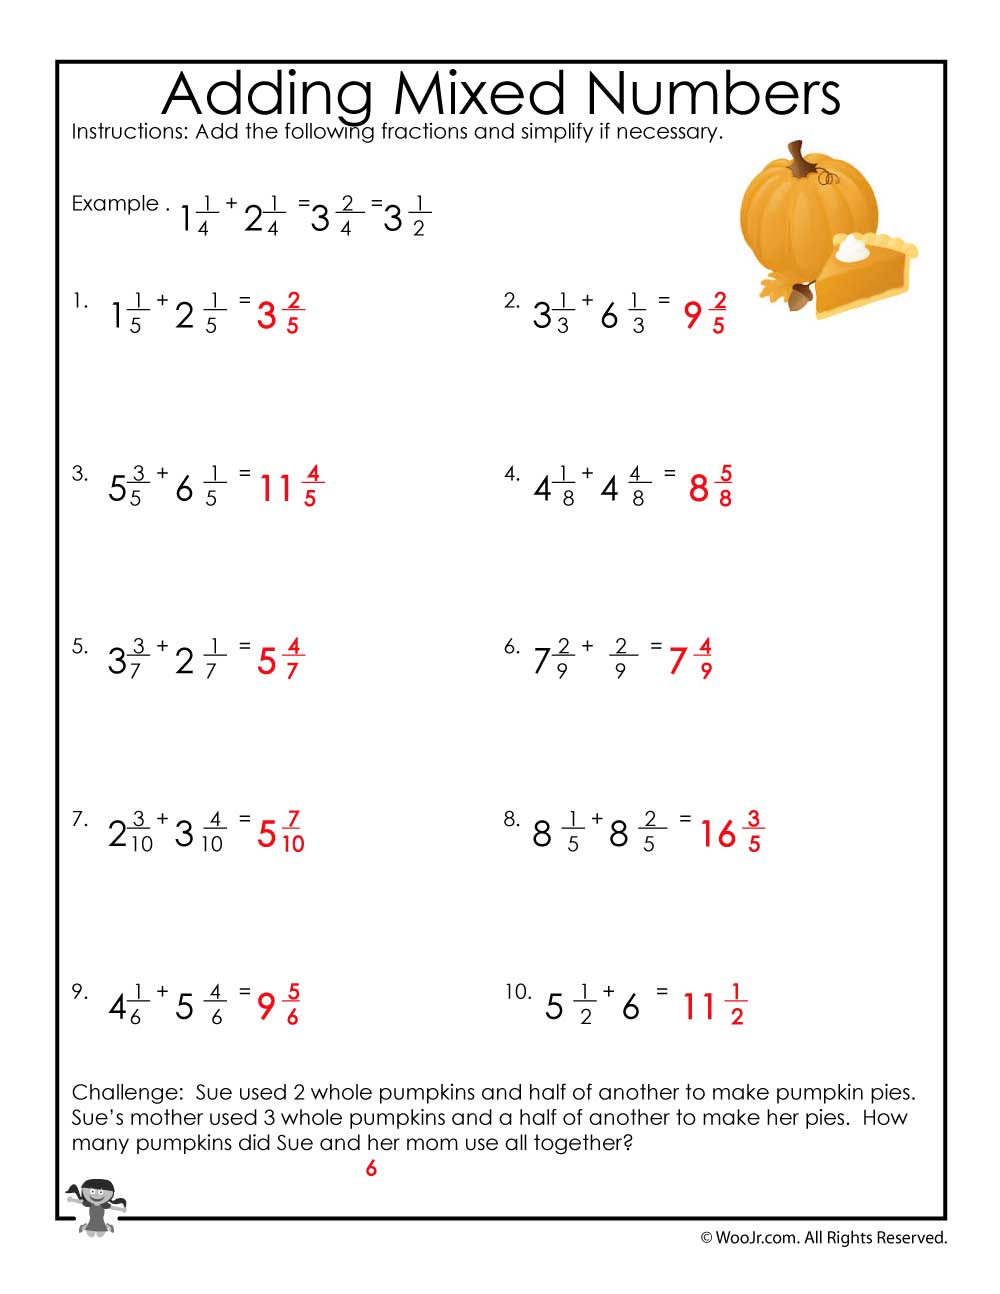 Adding Mixed Numbers Worksheet Answers Woo Jr Kids Activities